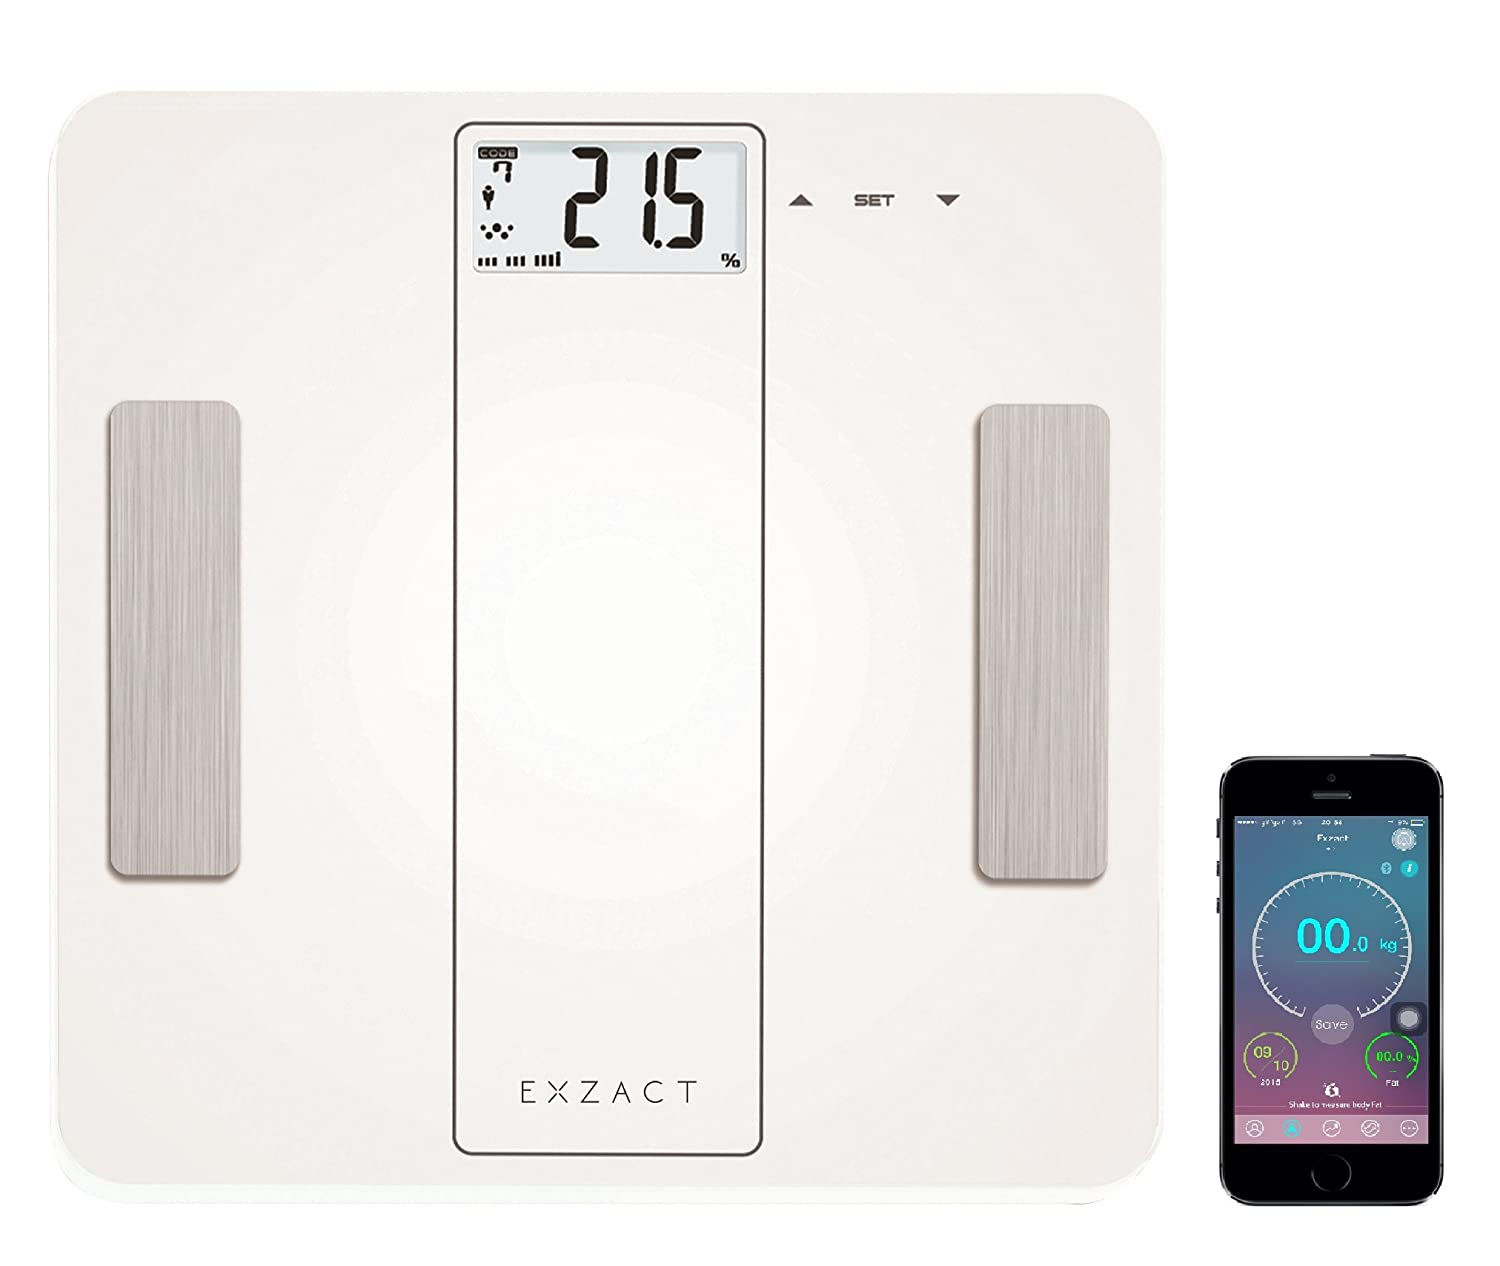 Exzact EX912 Smart Body Analysis Scale - Bluetooth 4.0 For Smart Phones iOS (iPhone) - Body Fat / Body Water / Muscle / Bone - Large Capacity: 180 kg/ 400 lb Digital Bathroom Scale / Electronic Weighing Scale (White) Exerz Limited